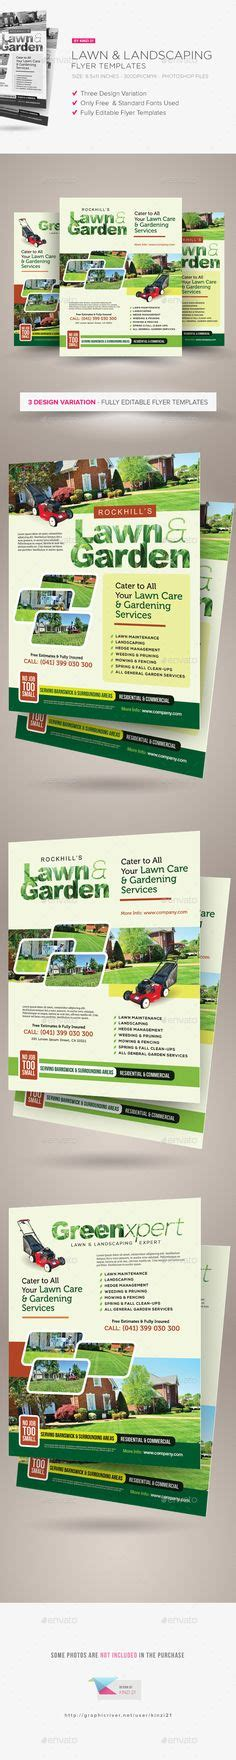 graphicriver lawn service business card template lawn care service business card business lawn care and